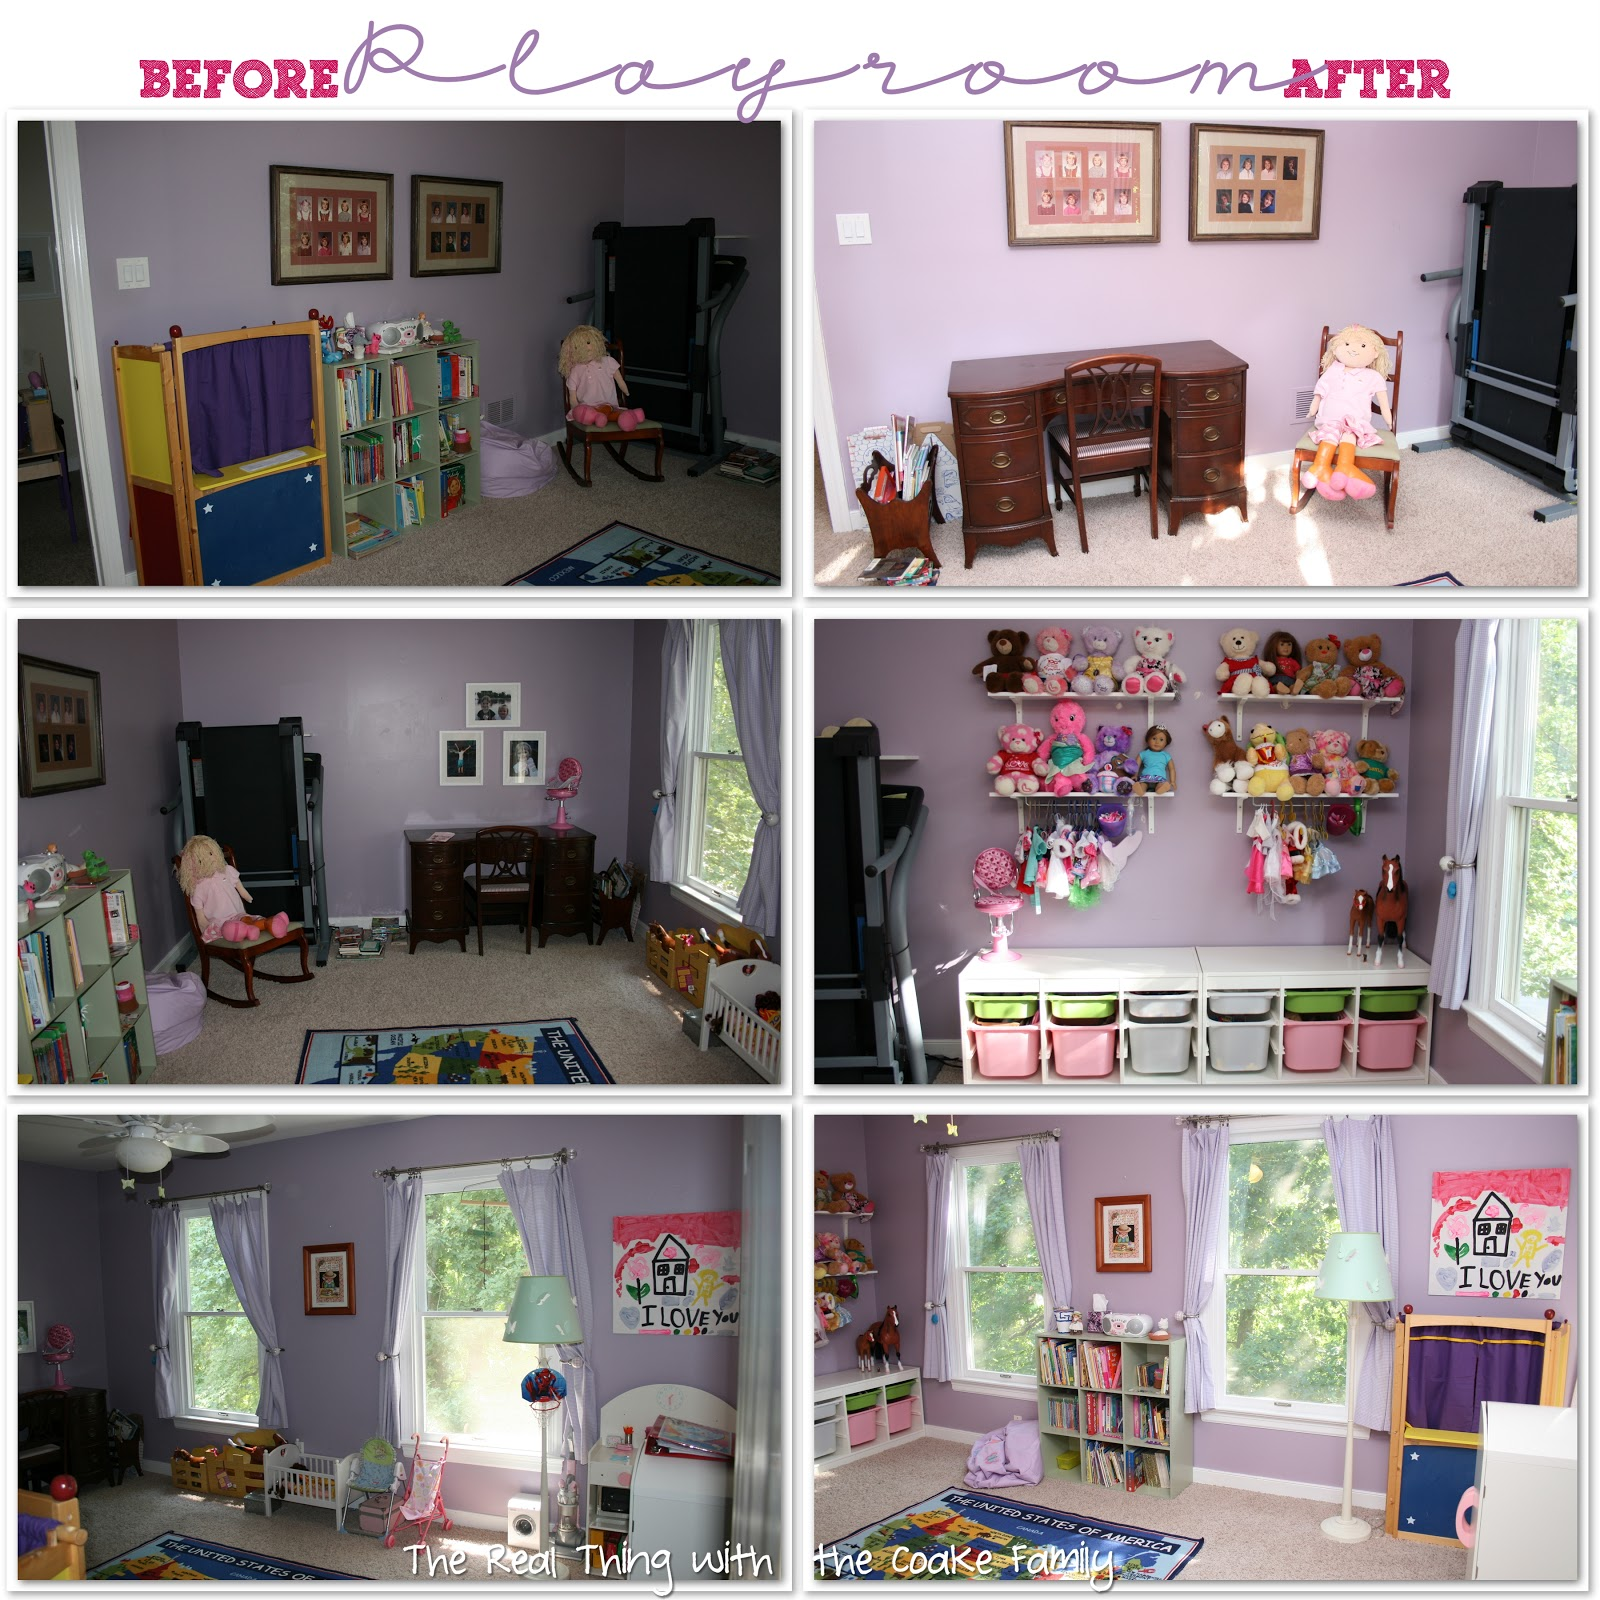 Kids Playroom Storage toy storage: kid's playroom reorganization - the real thing with